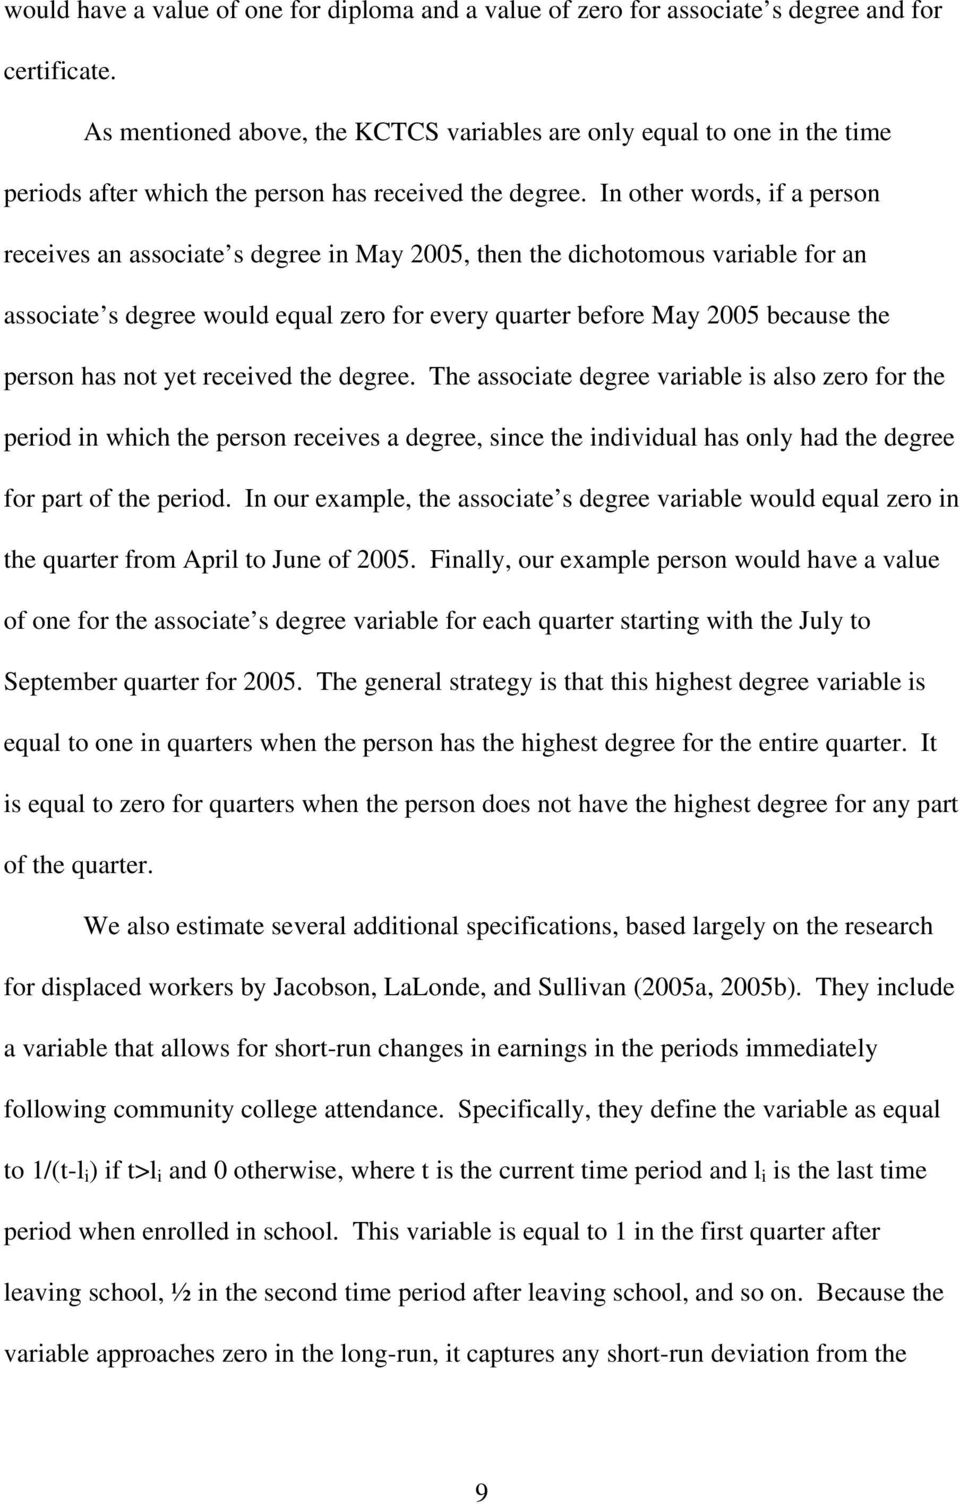 In other words, if a person receives an associate s degree in May 2005, then the dichotomous variable for an associate s degree would equal zero for every quarter before May 2005 because the person